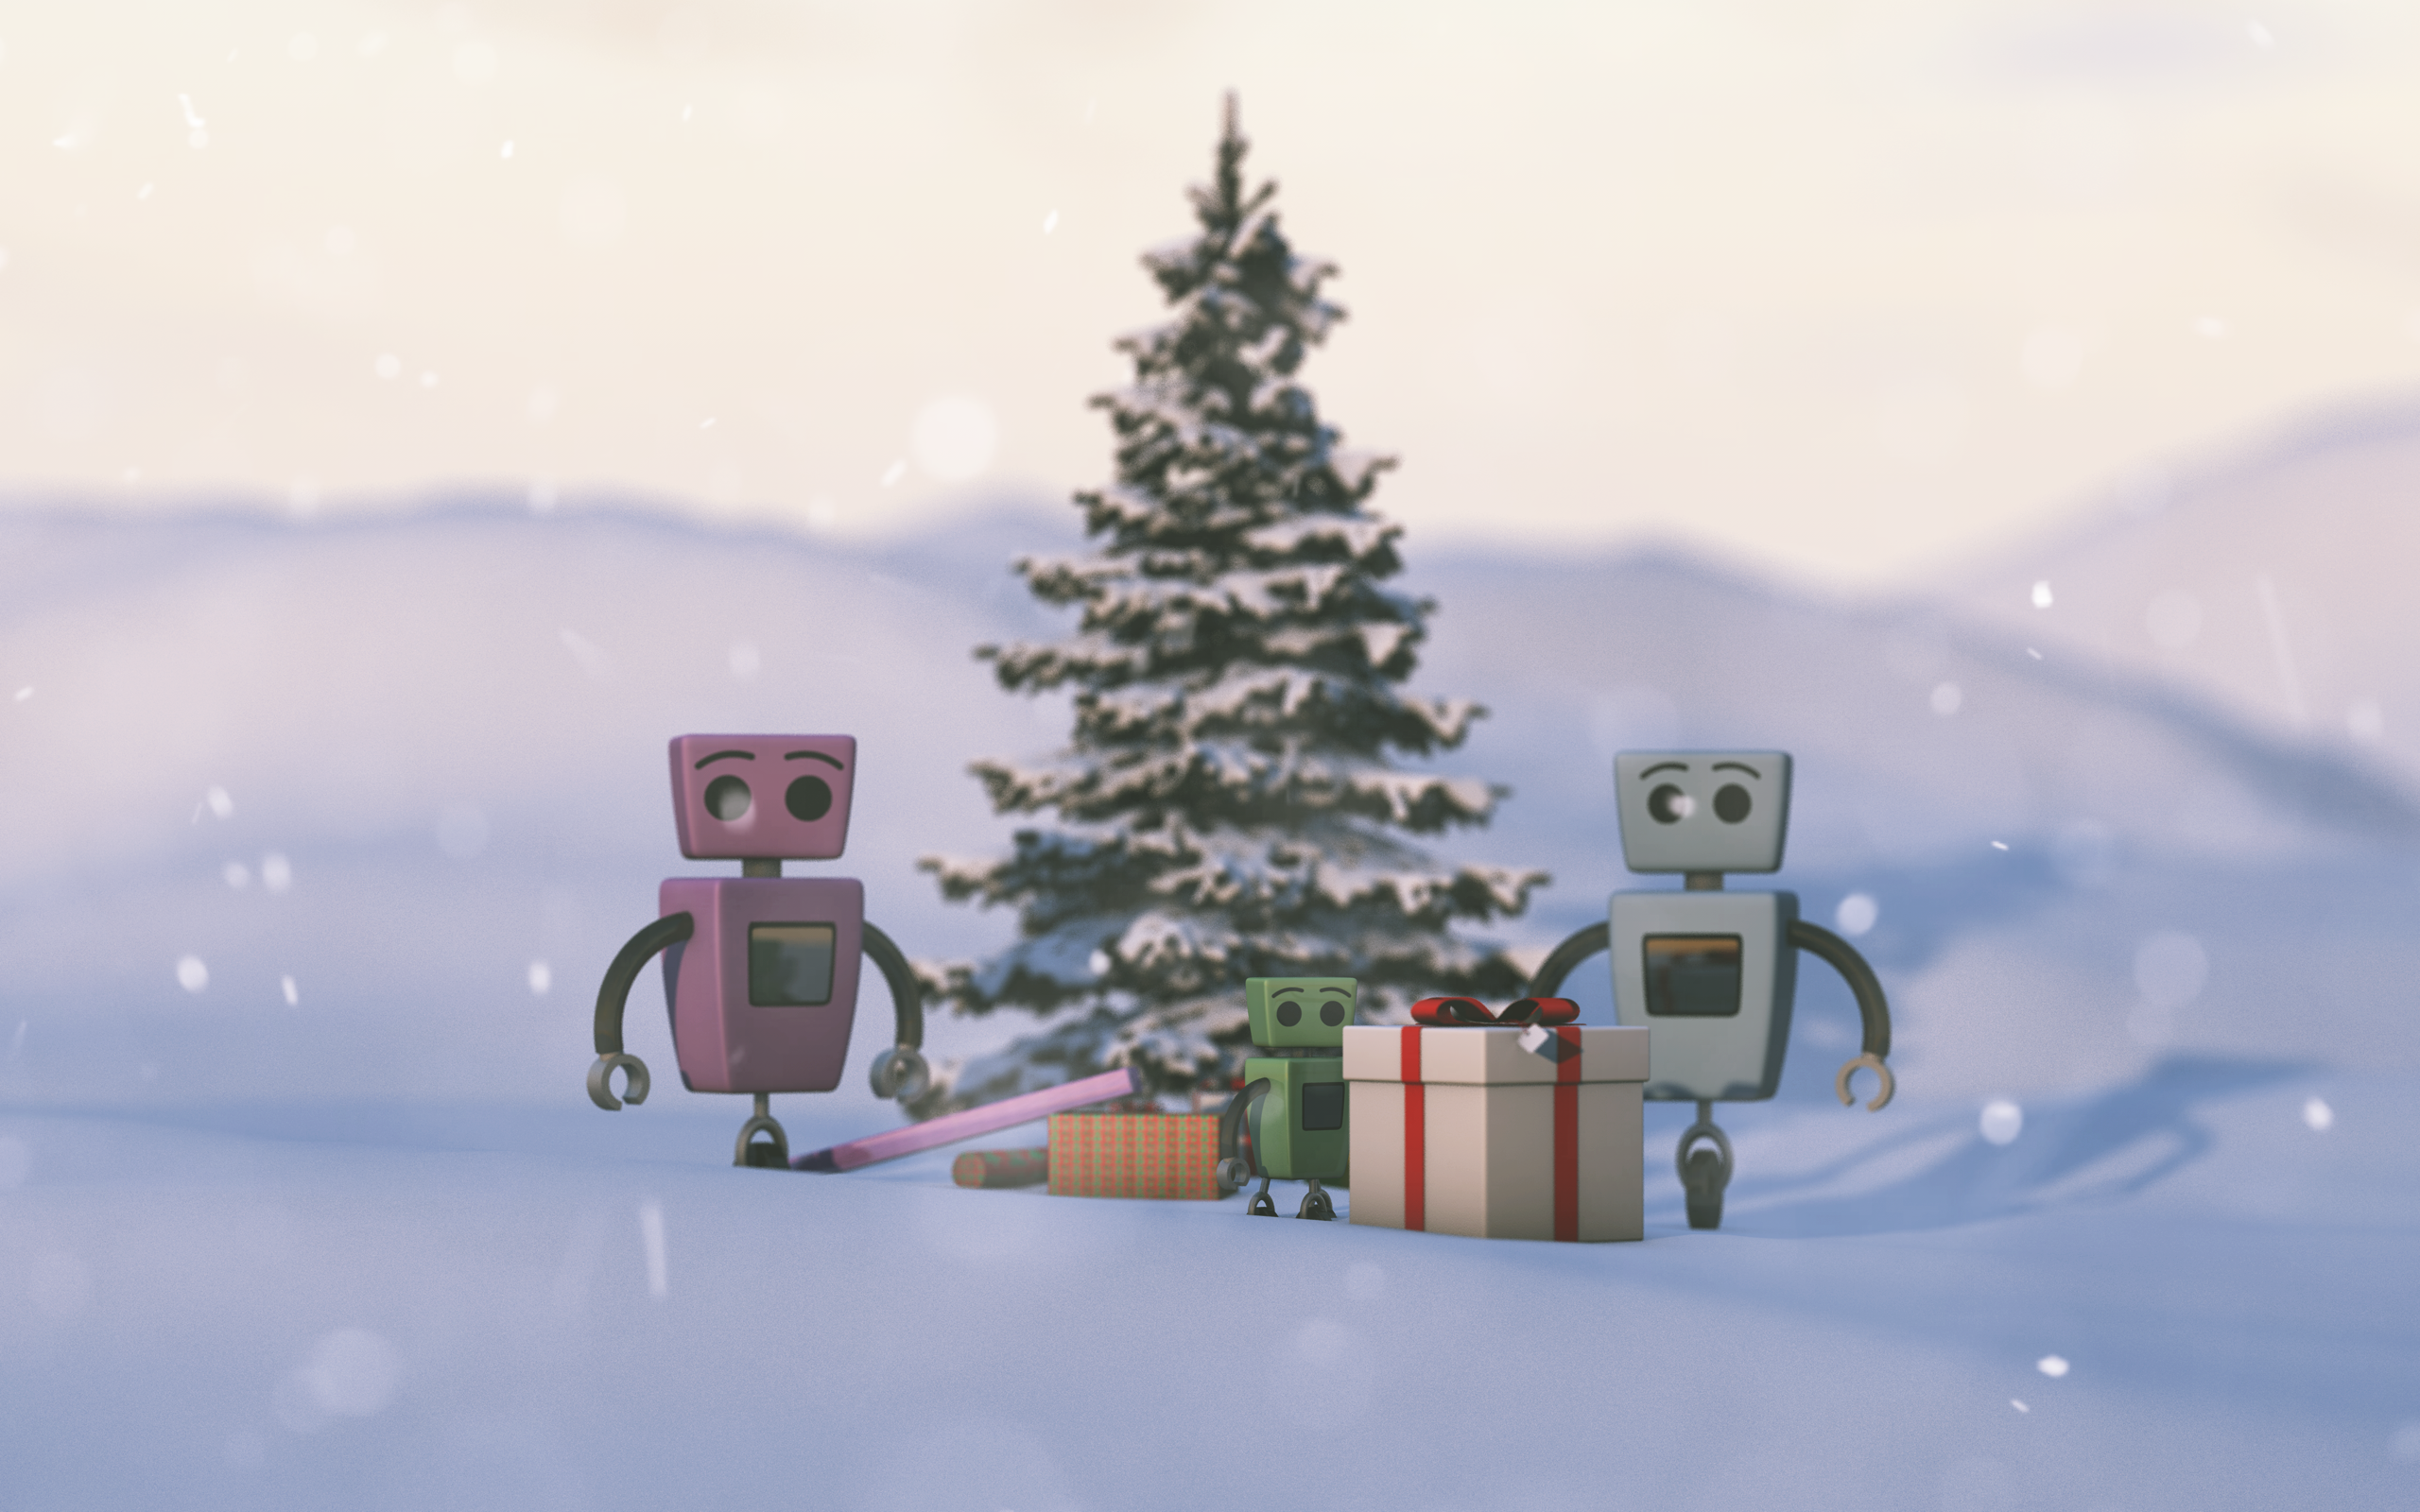 Robot Christmas. by Zictor on DeviantArt